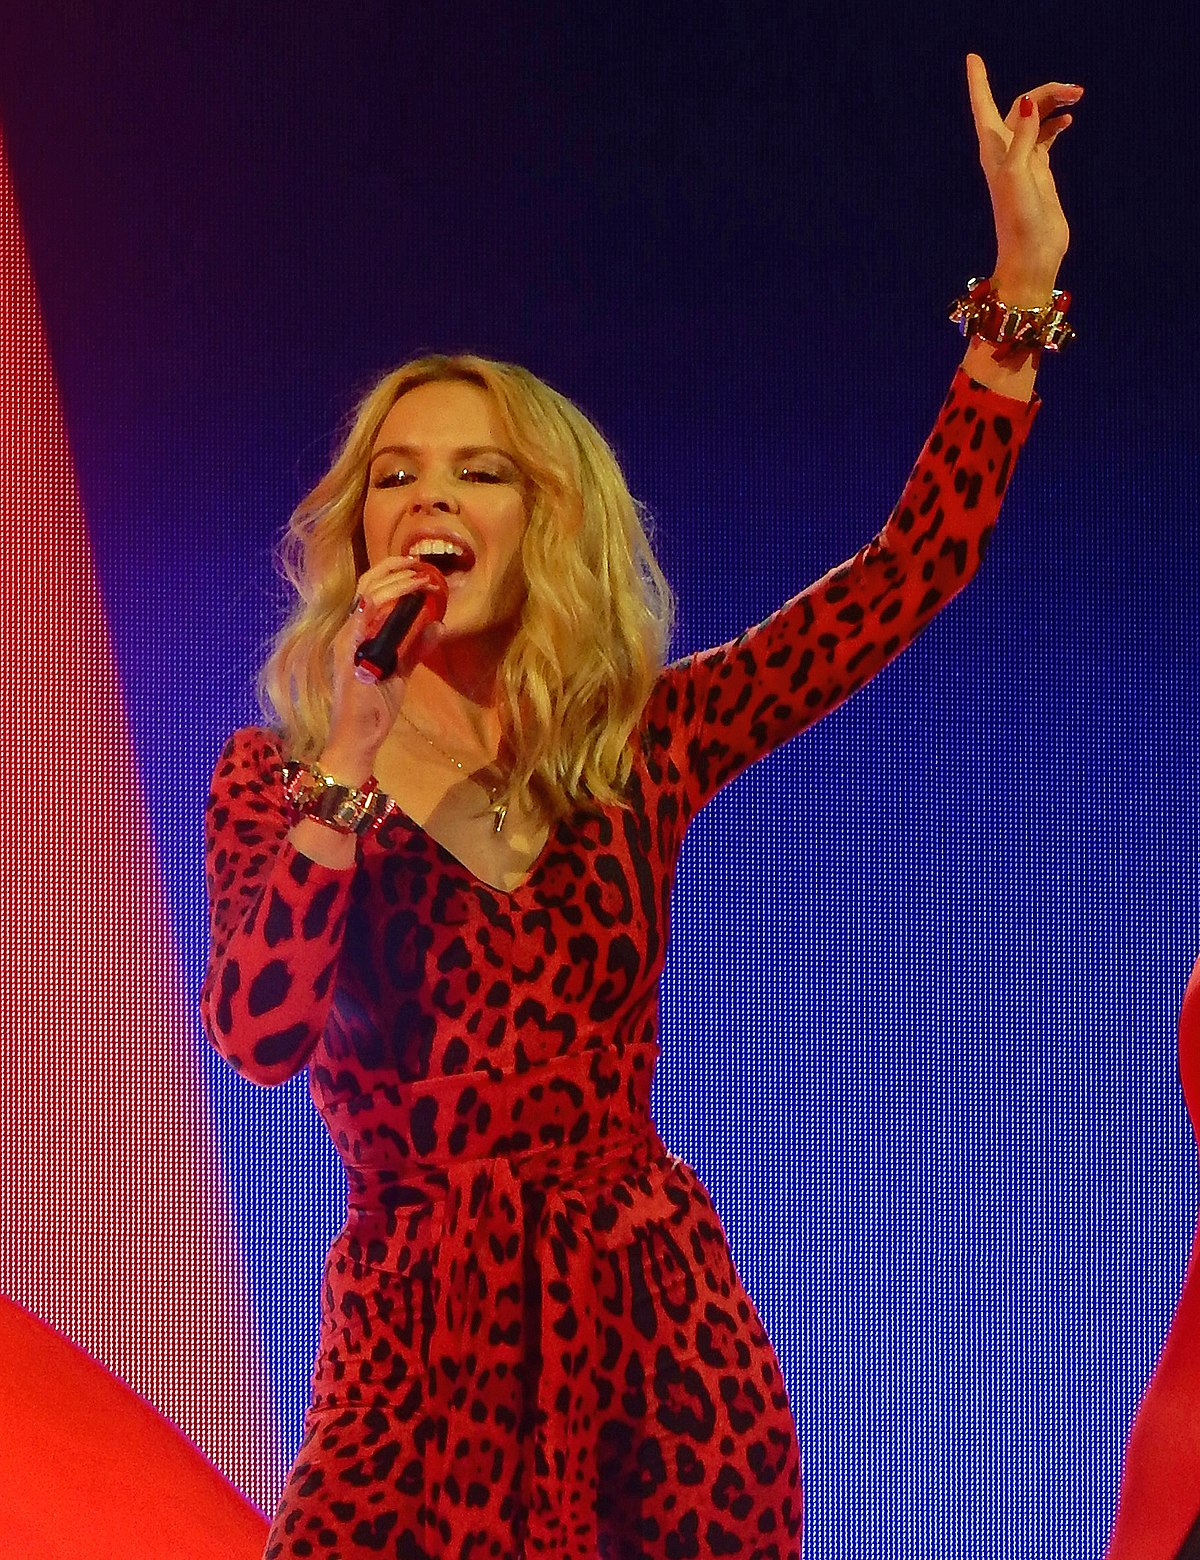 Kylie Minogue singles discography - Wikipedia